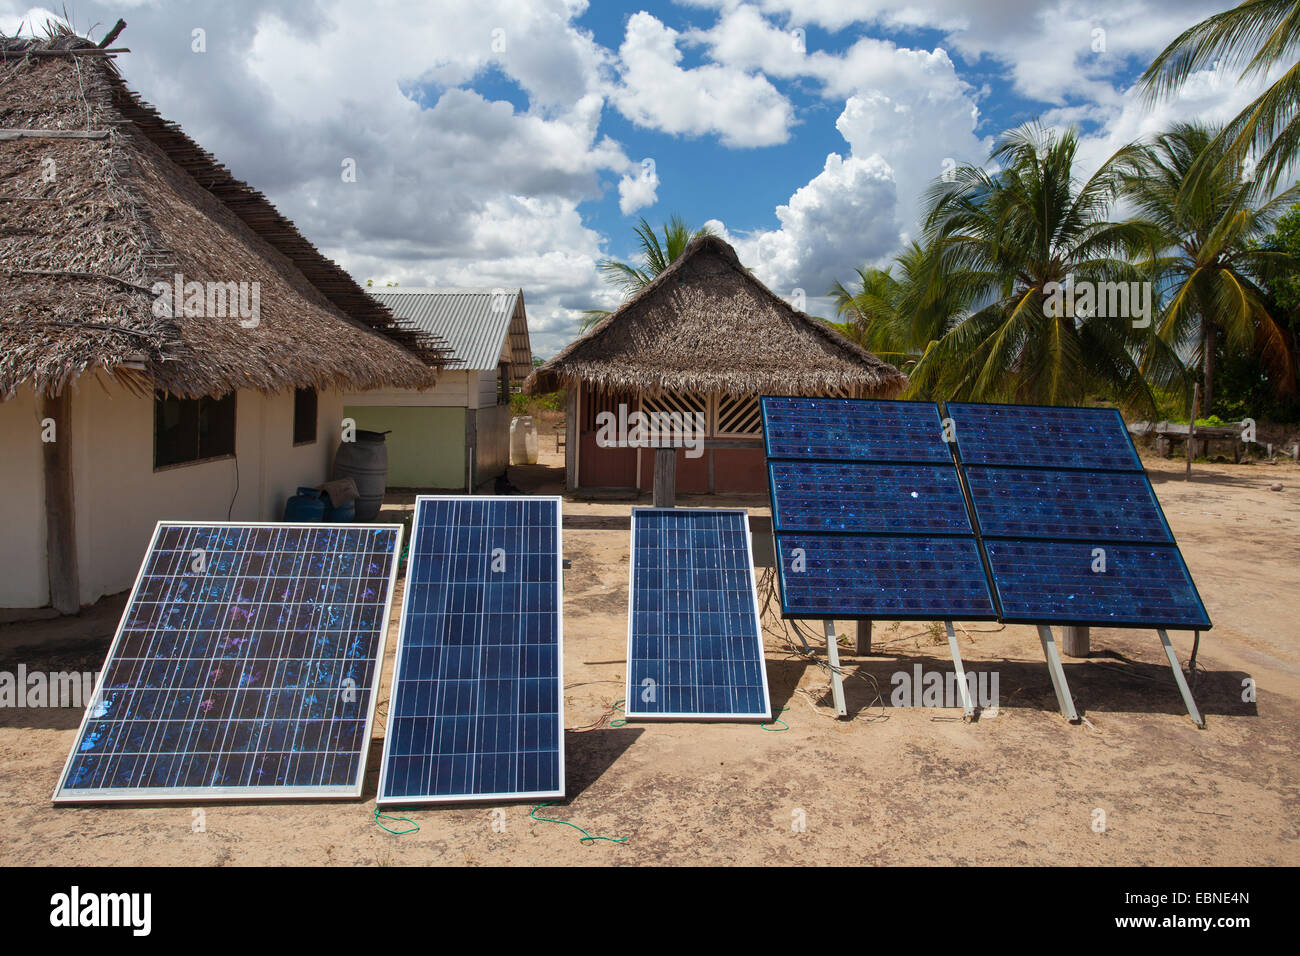 SOLAR PANELS, Rupunau (Wapishana Indian village), south Rupununi, Guyana, South America. - Stock Image